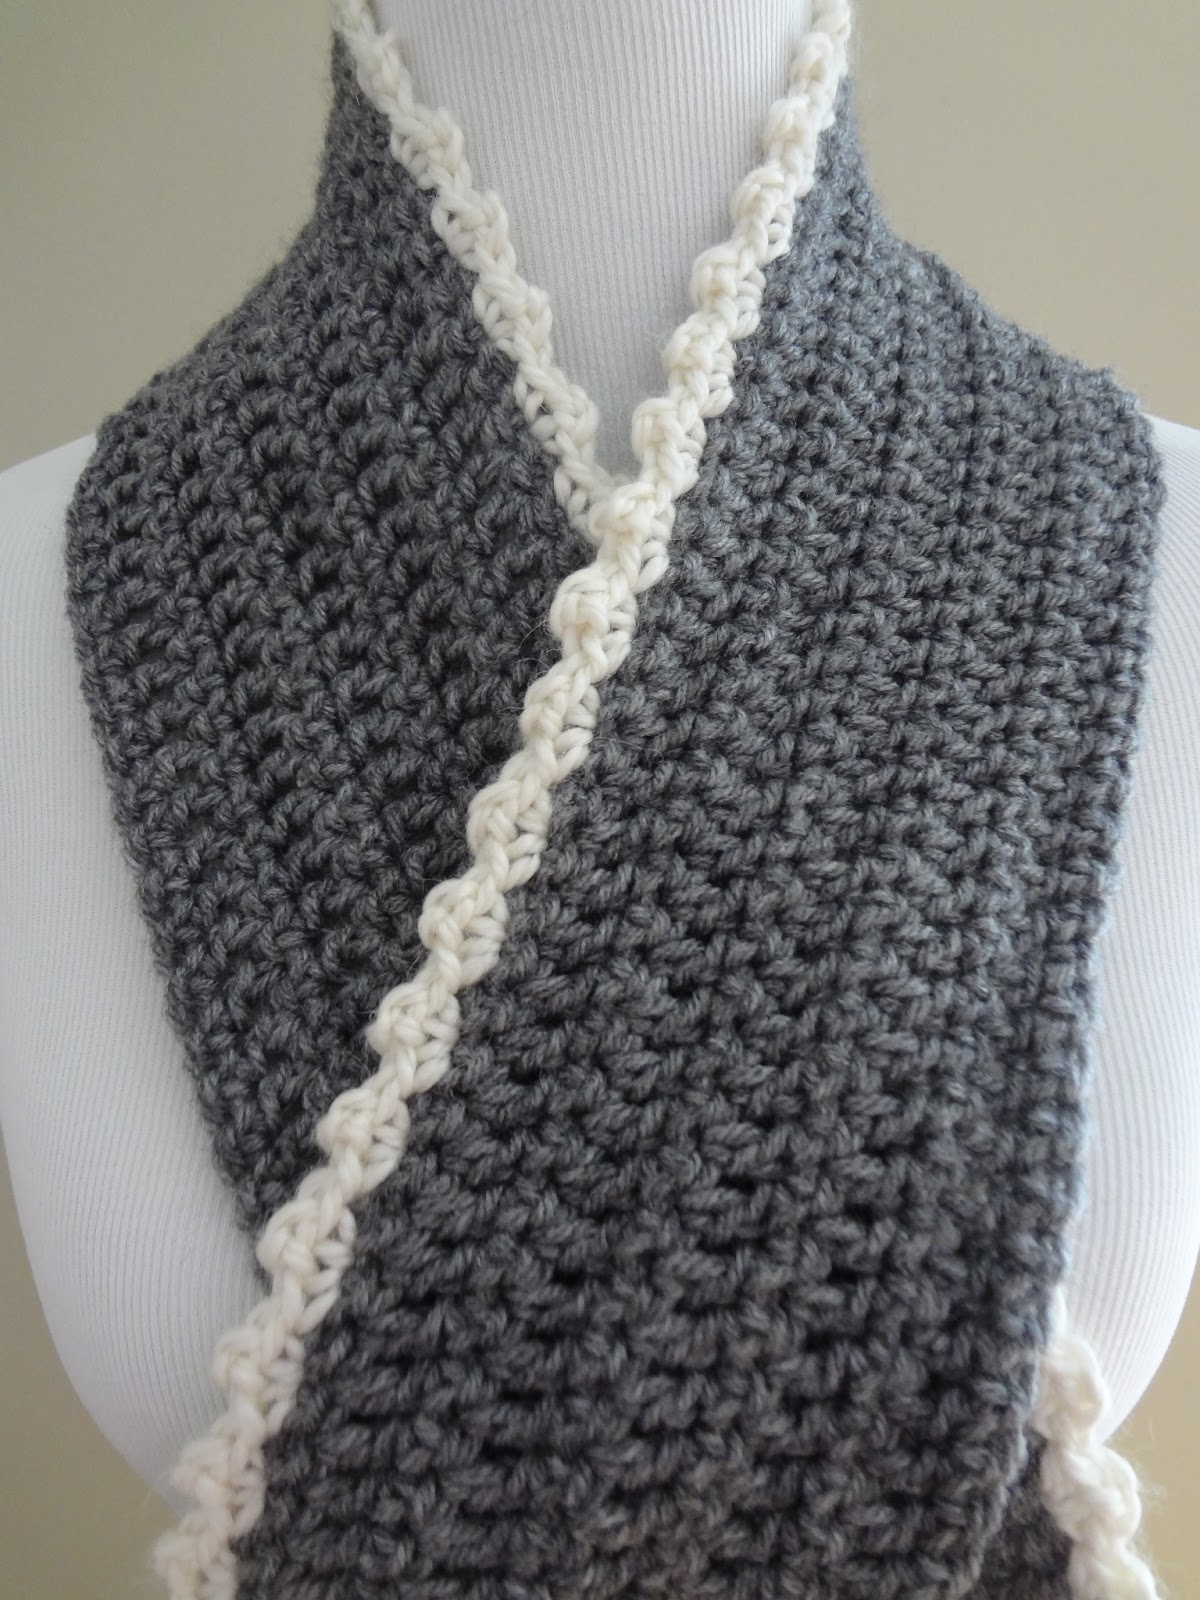 How To Crochet A Scarf : for scarf body make a chain that is the desired length of your scarf ...